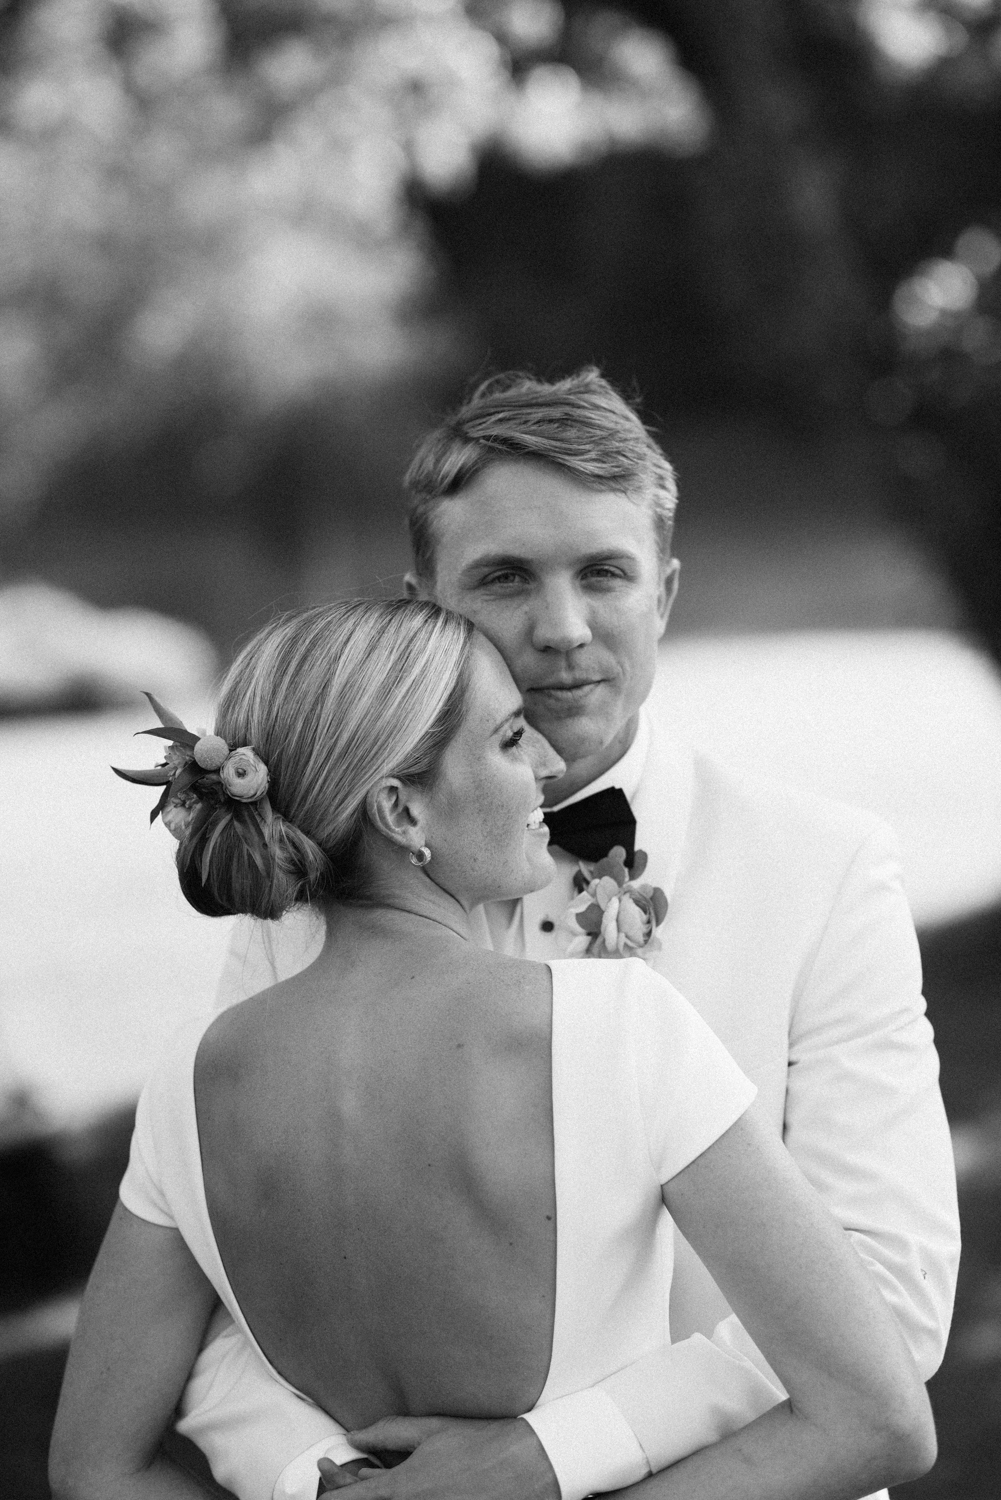 Poetry-&-motion-wedding-photography-elk-river-club-emily-&-chad24.jpg